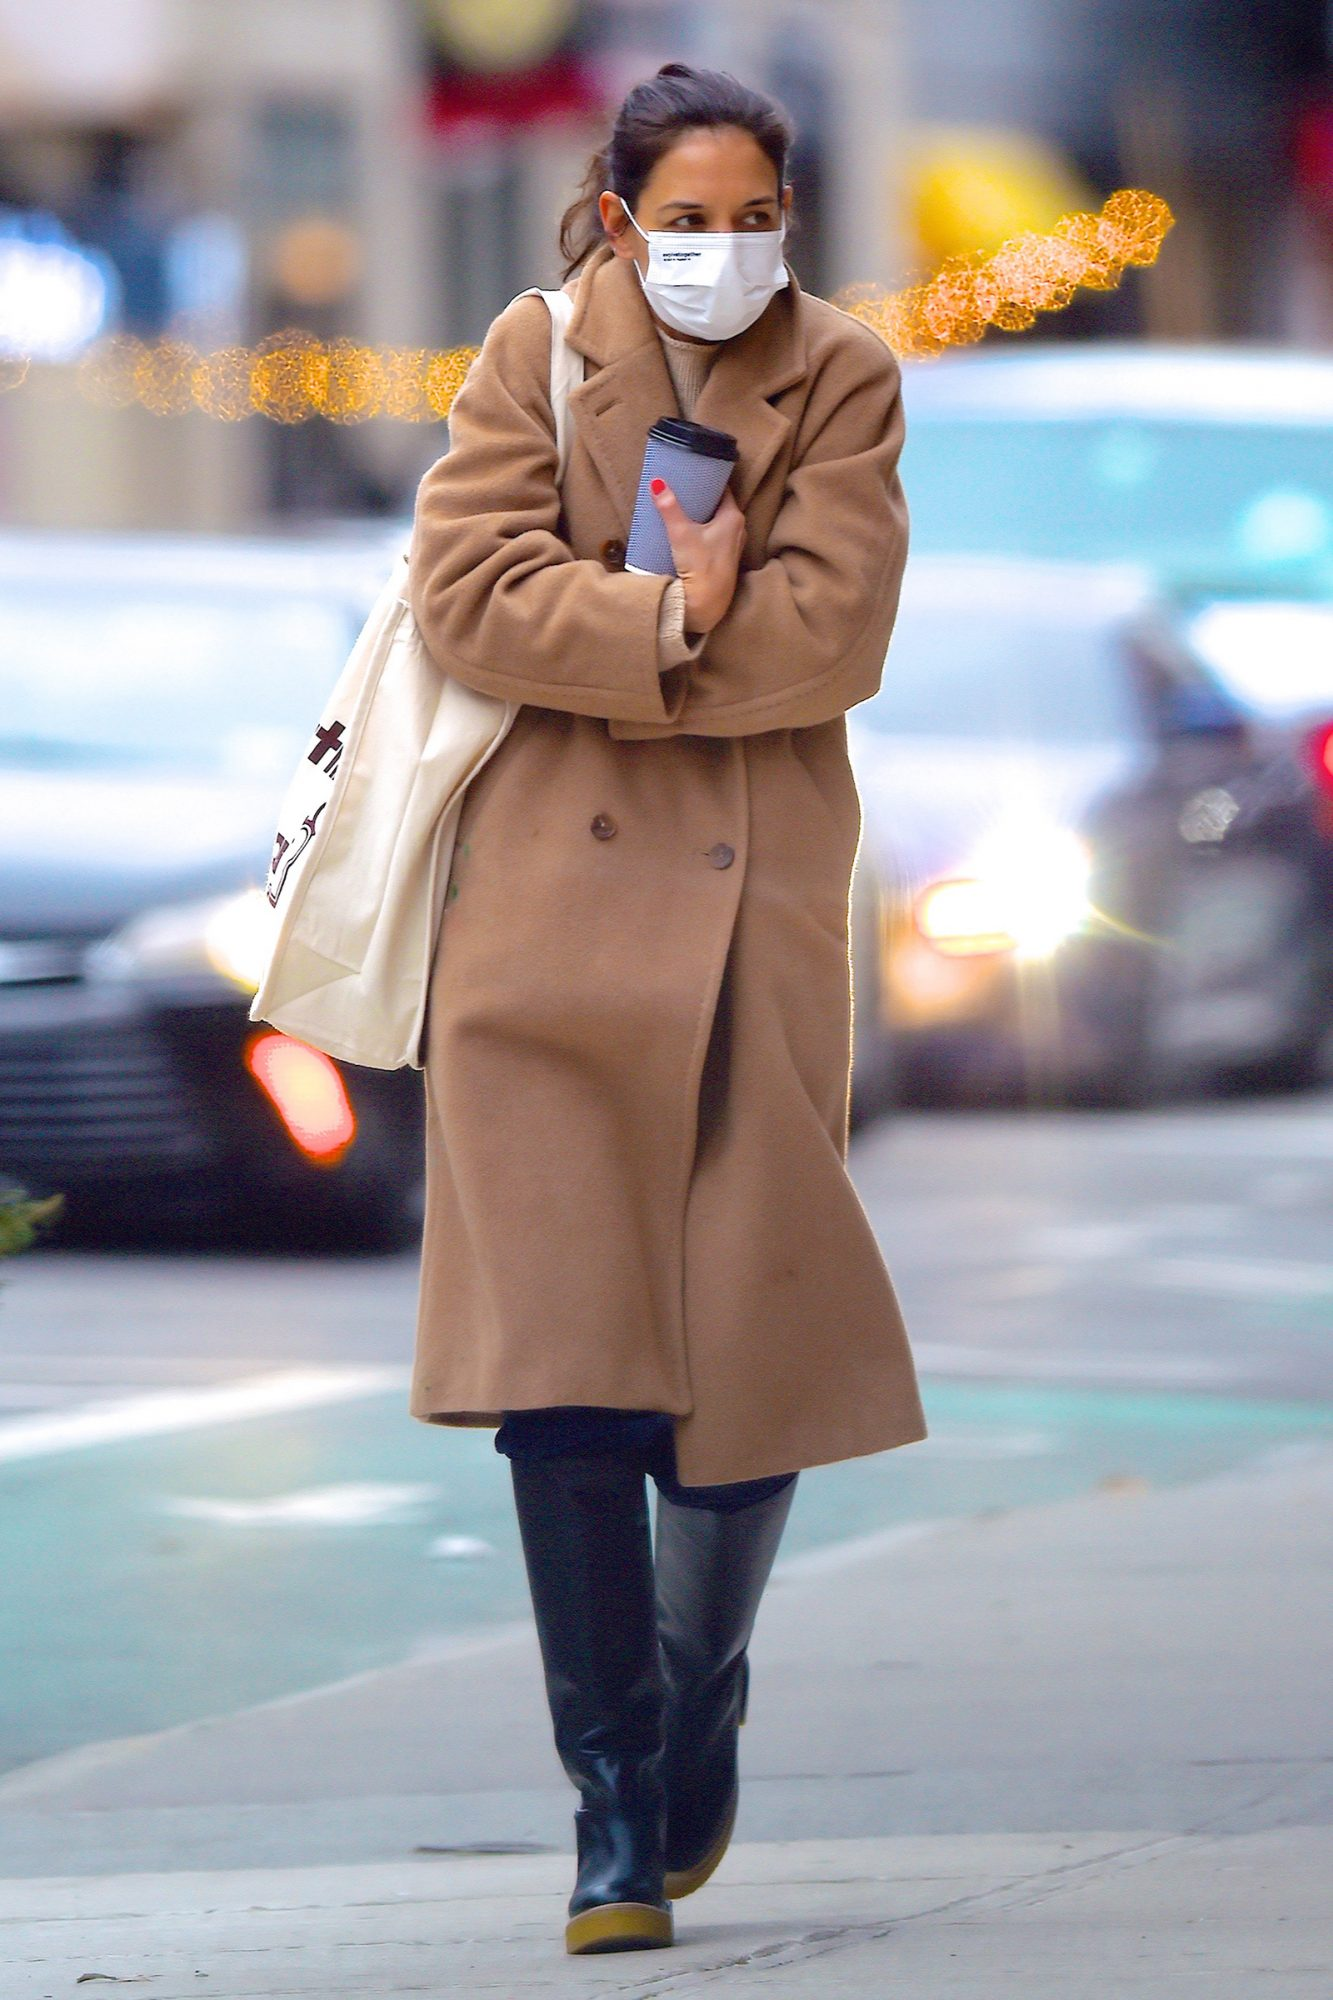 Katie Holmes is seen out and about in Manhattan on December 16, 2020 in New York City